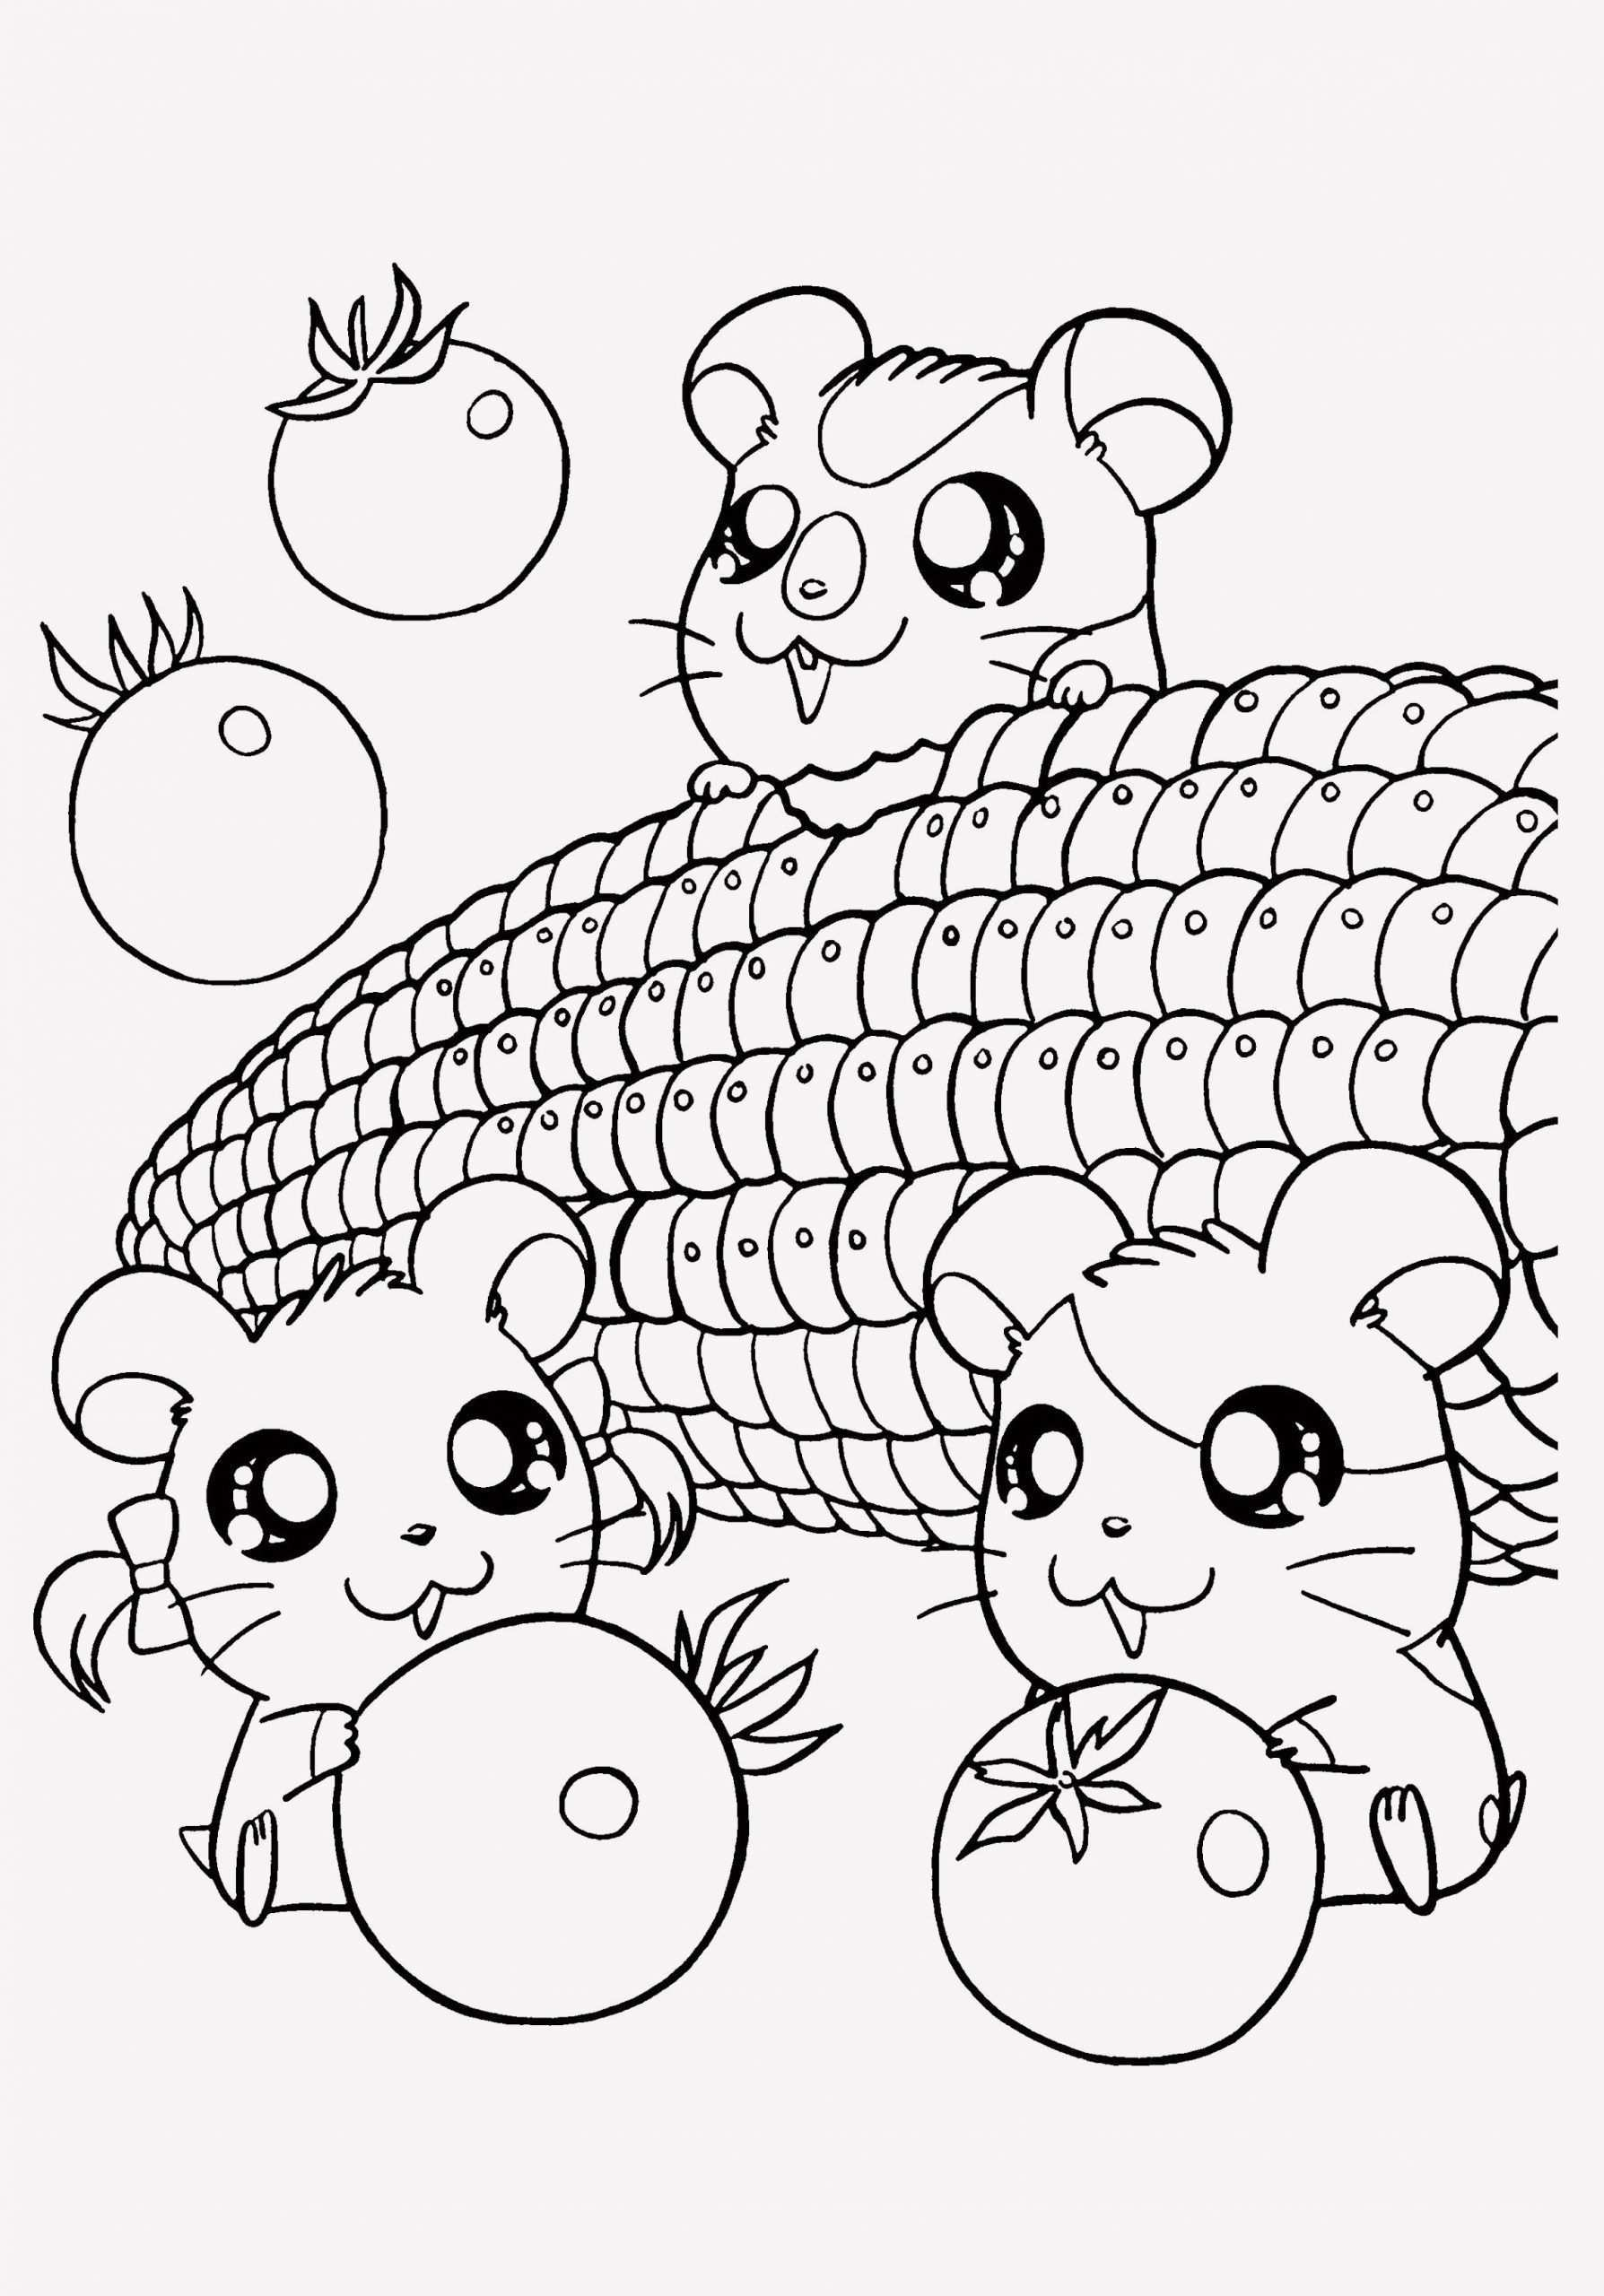 14 Coloring Page Of Hello Kitty Hello Kitty Colouring Pages Cat Coloring Book Animal Coloring Books